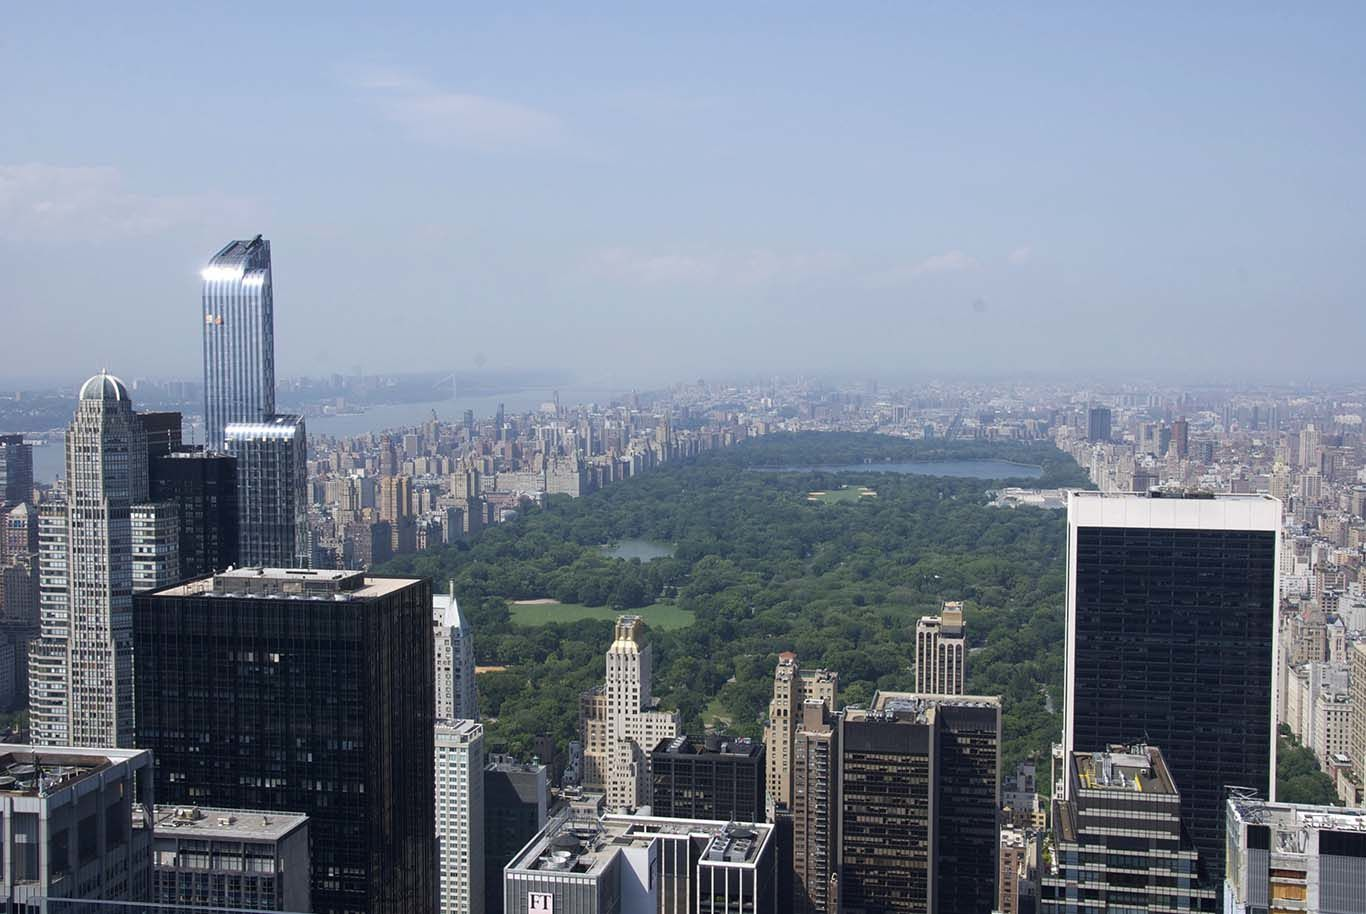 Views from New York City from the top of the Rockefeller Center: impressive and moving !